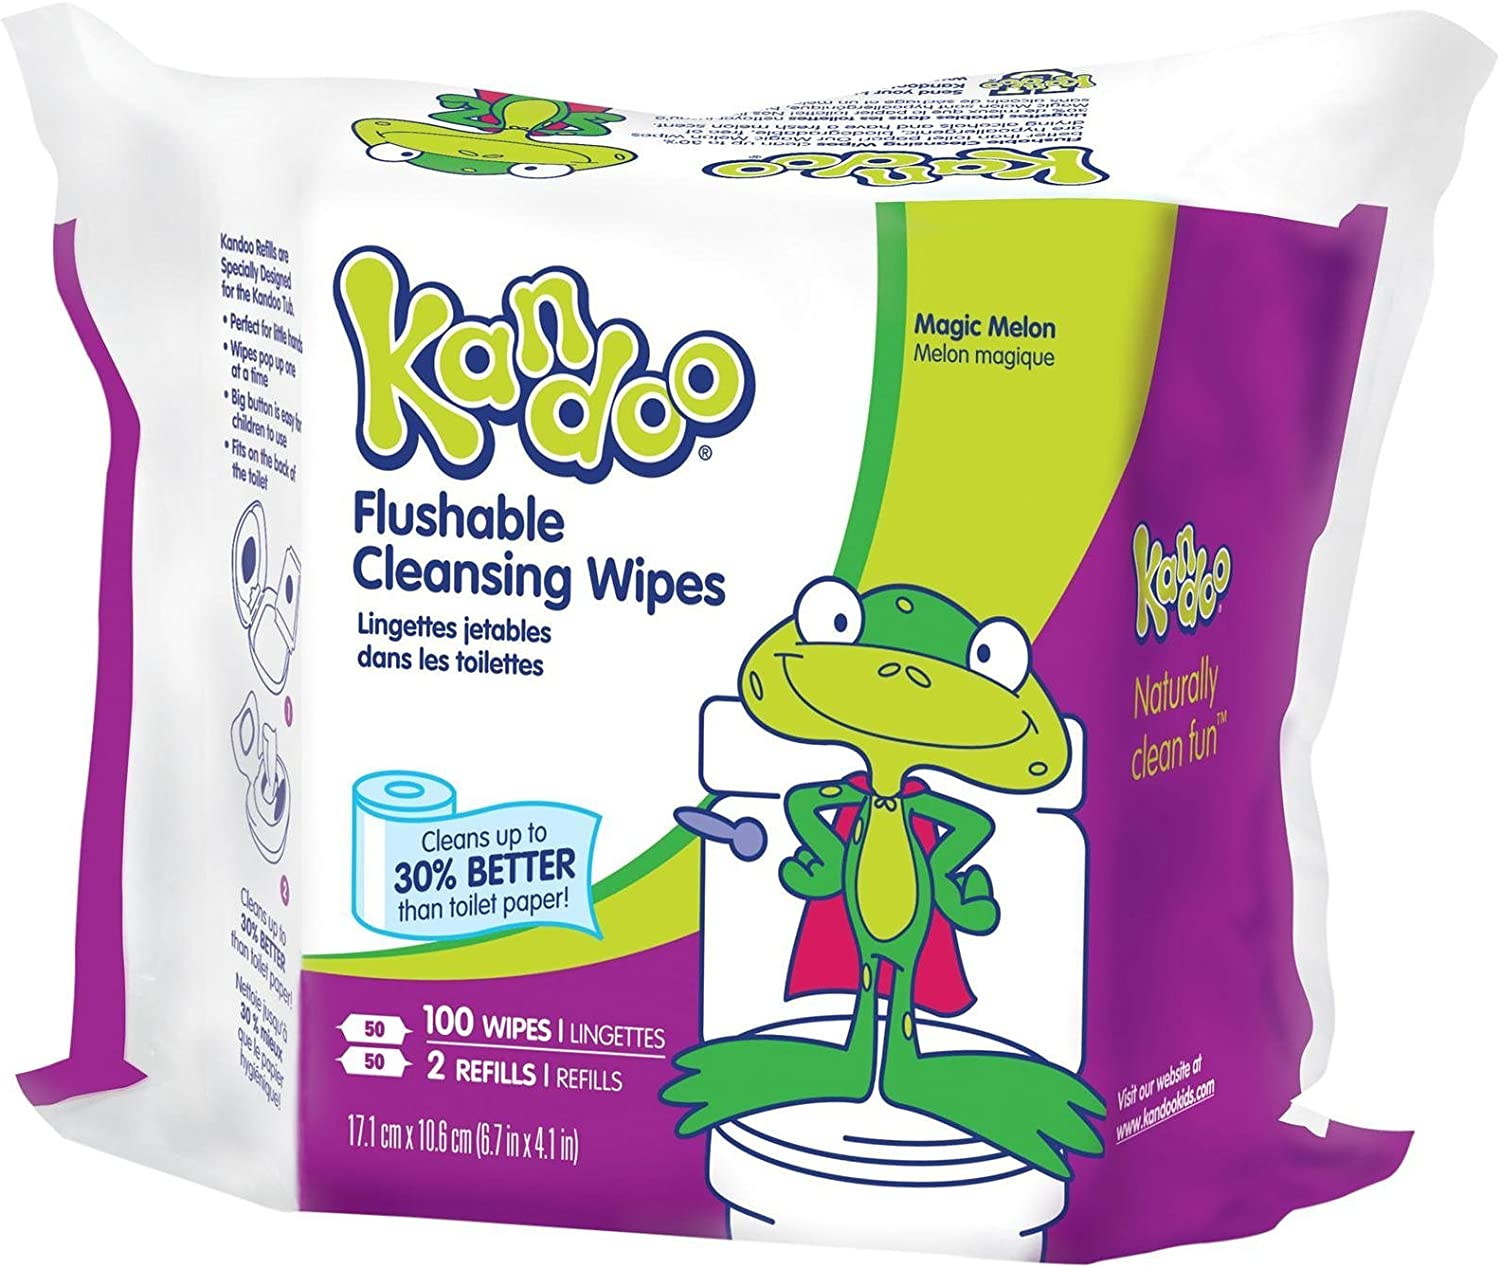 Refill 100 Count Kandoo Flushable Cleansing Wipes Magic Melon Scent